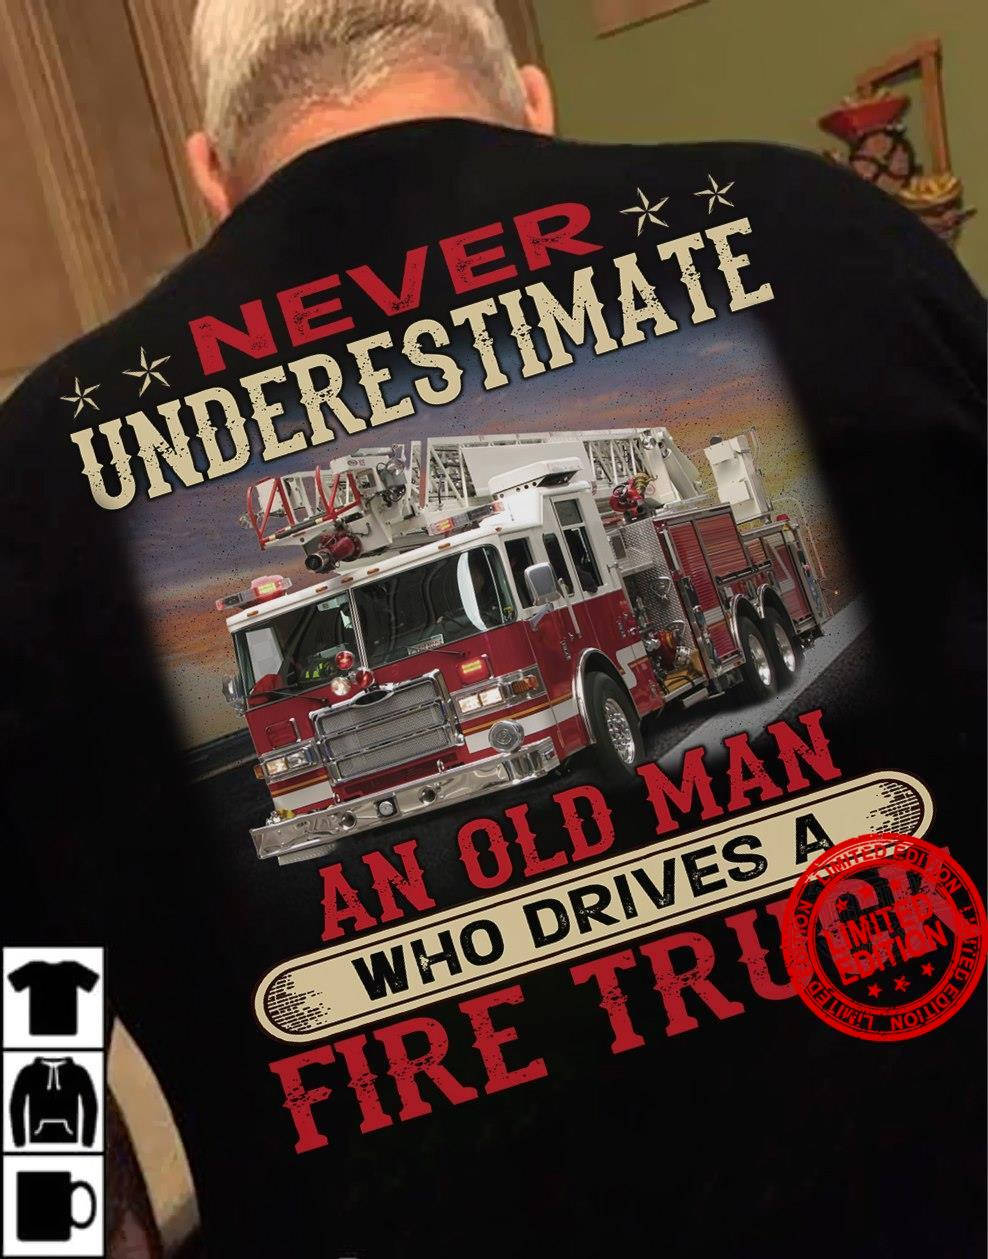 Never Underestimate An Old Man Who Drives A Fire Truck Shirt